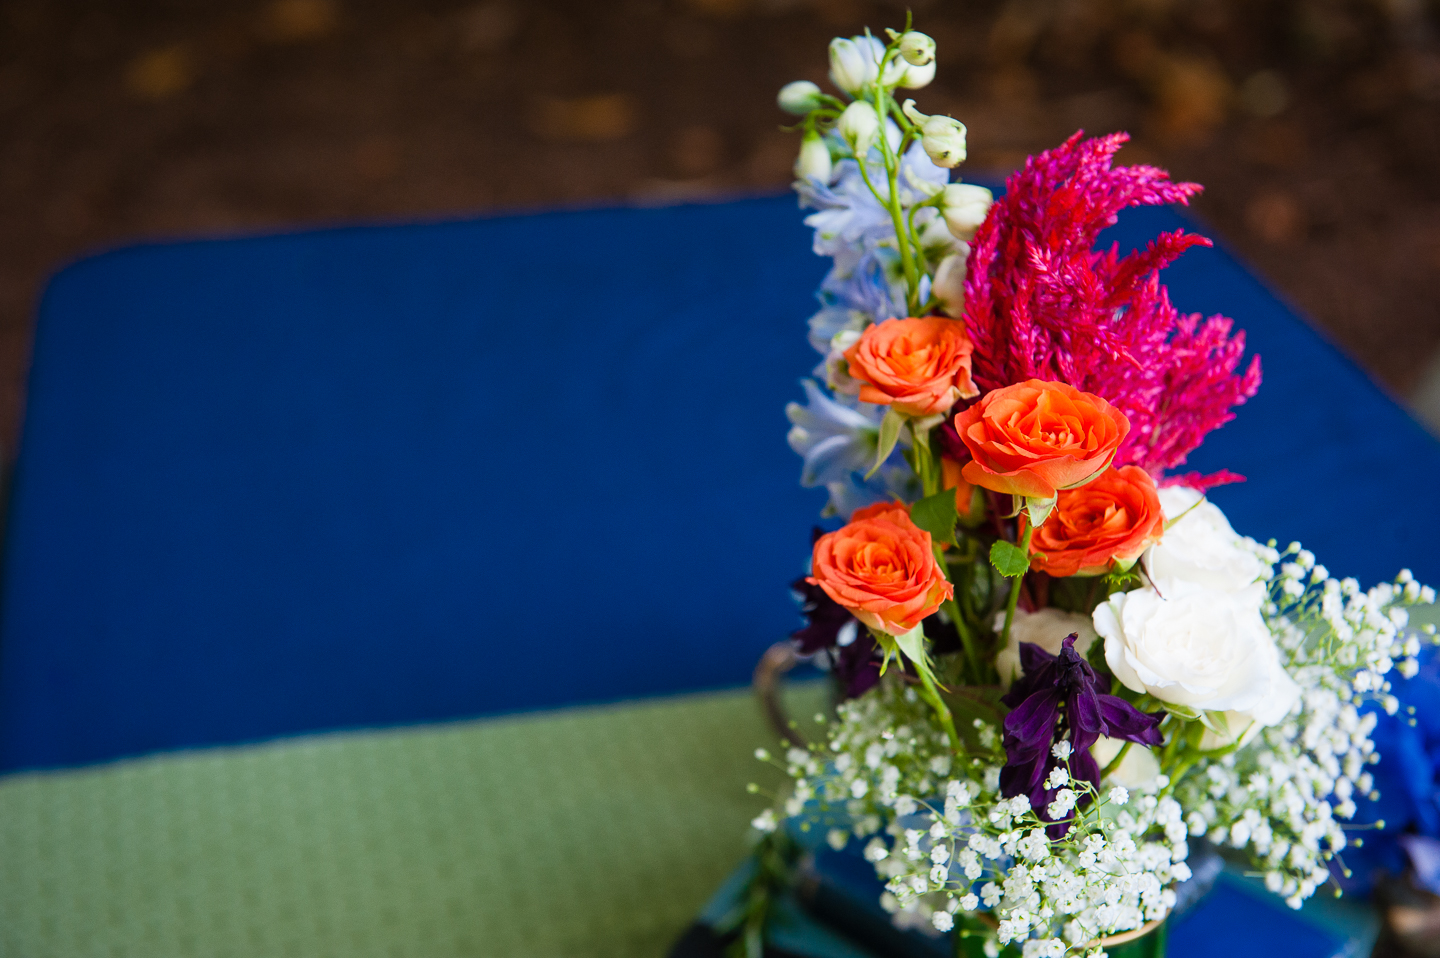 handpicked wildflowers adorned the tables of this beautiful backyard wedding